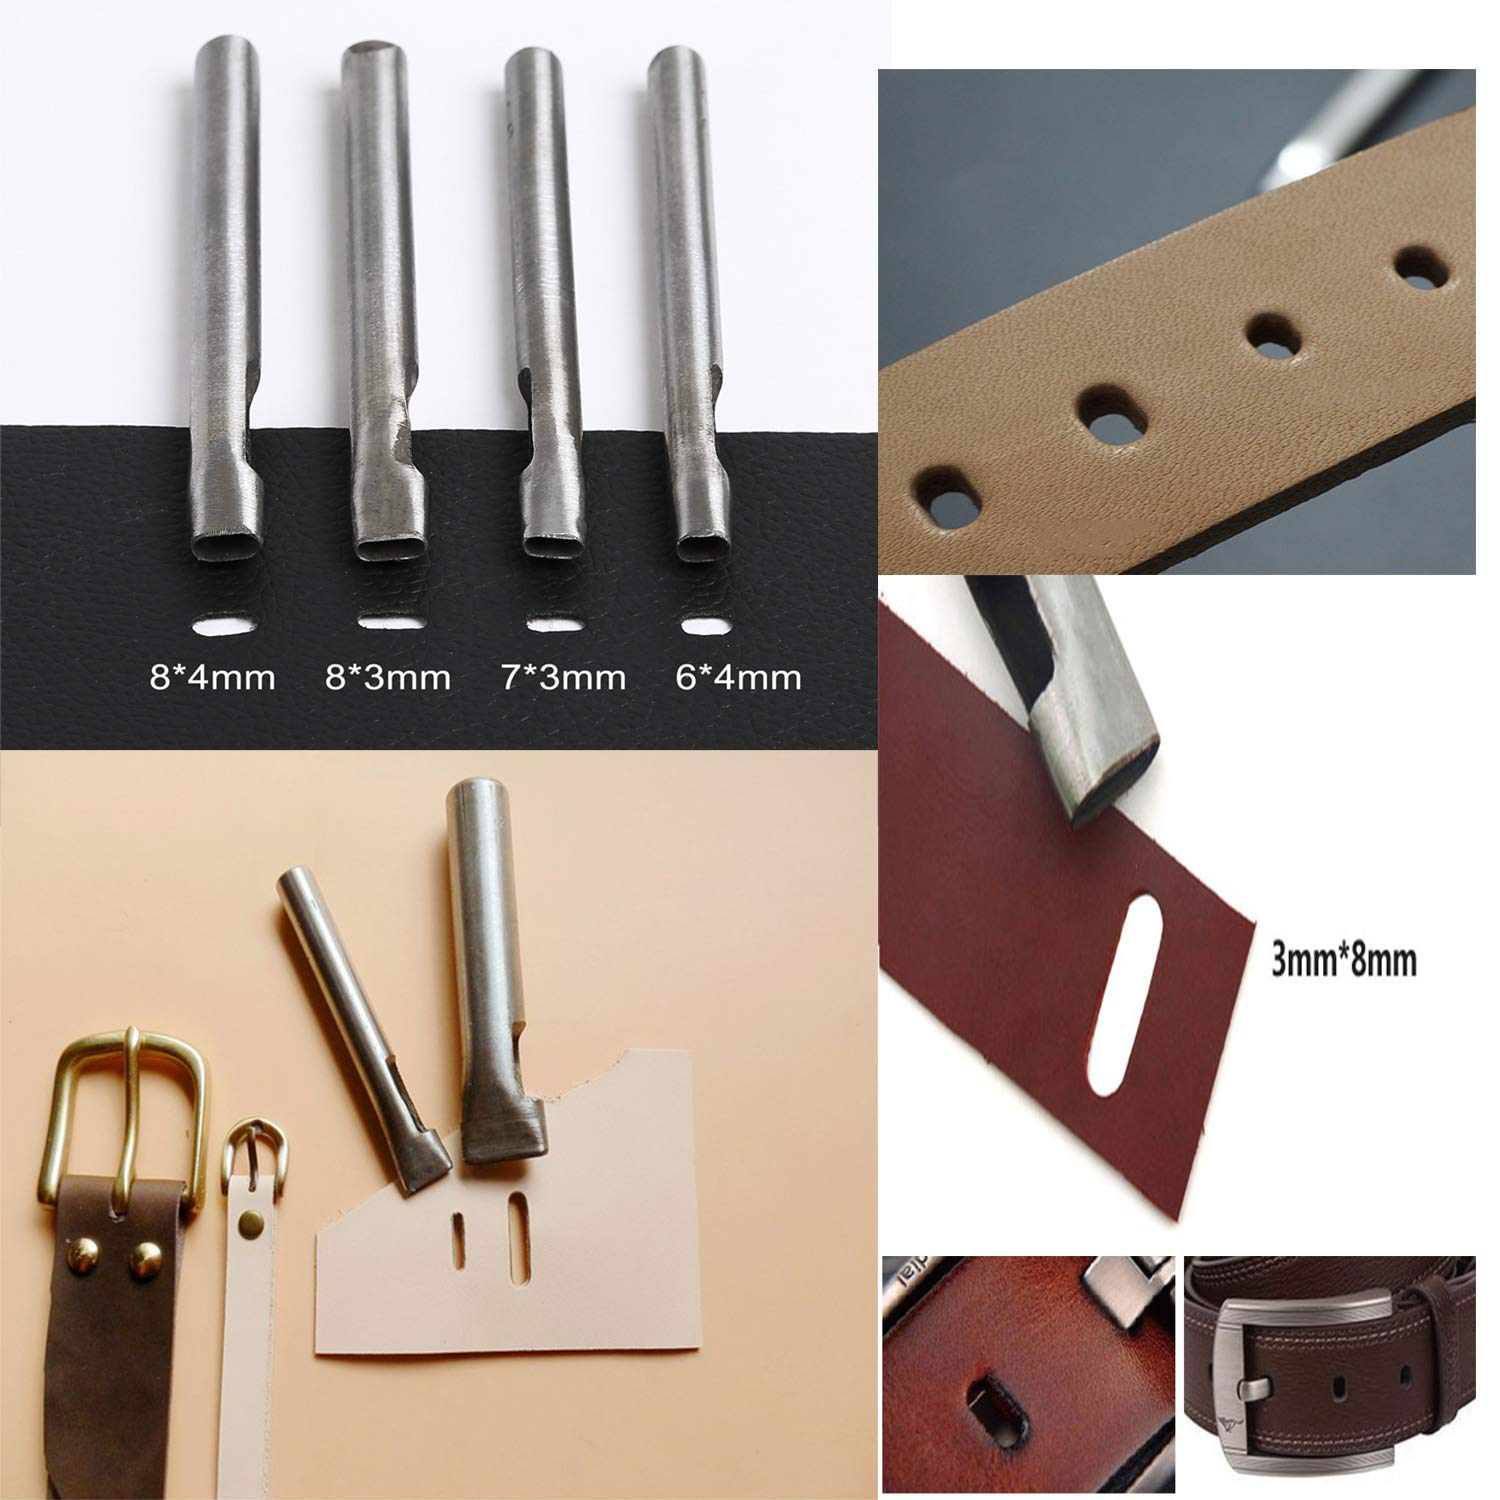 Dorhui 372 Pieces Leather Crafting Tools,Leather Tools Leather Working Tools and Supplies, Leather Craft Stamping Tool, Prong Punch, Hole Hollow Punch, Matting Cut for DIY Leather Artworks by Dorhui (Image #6)